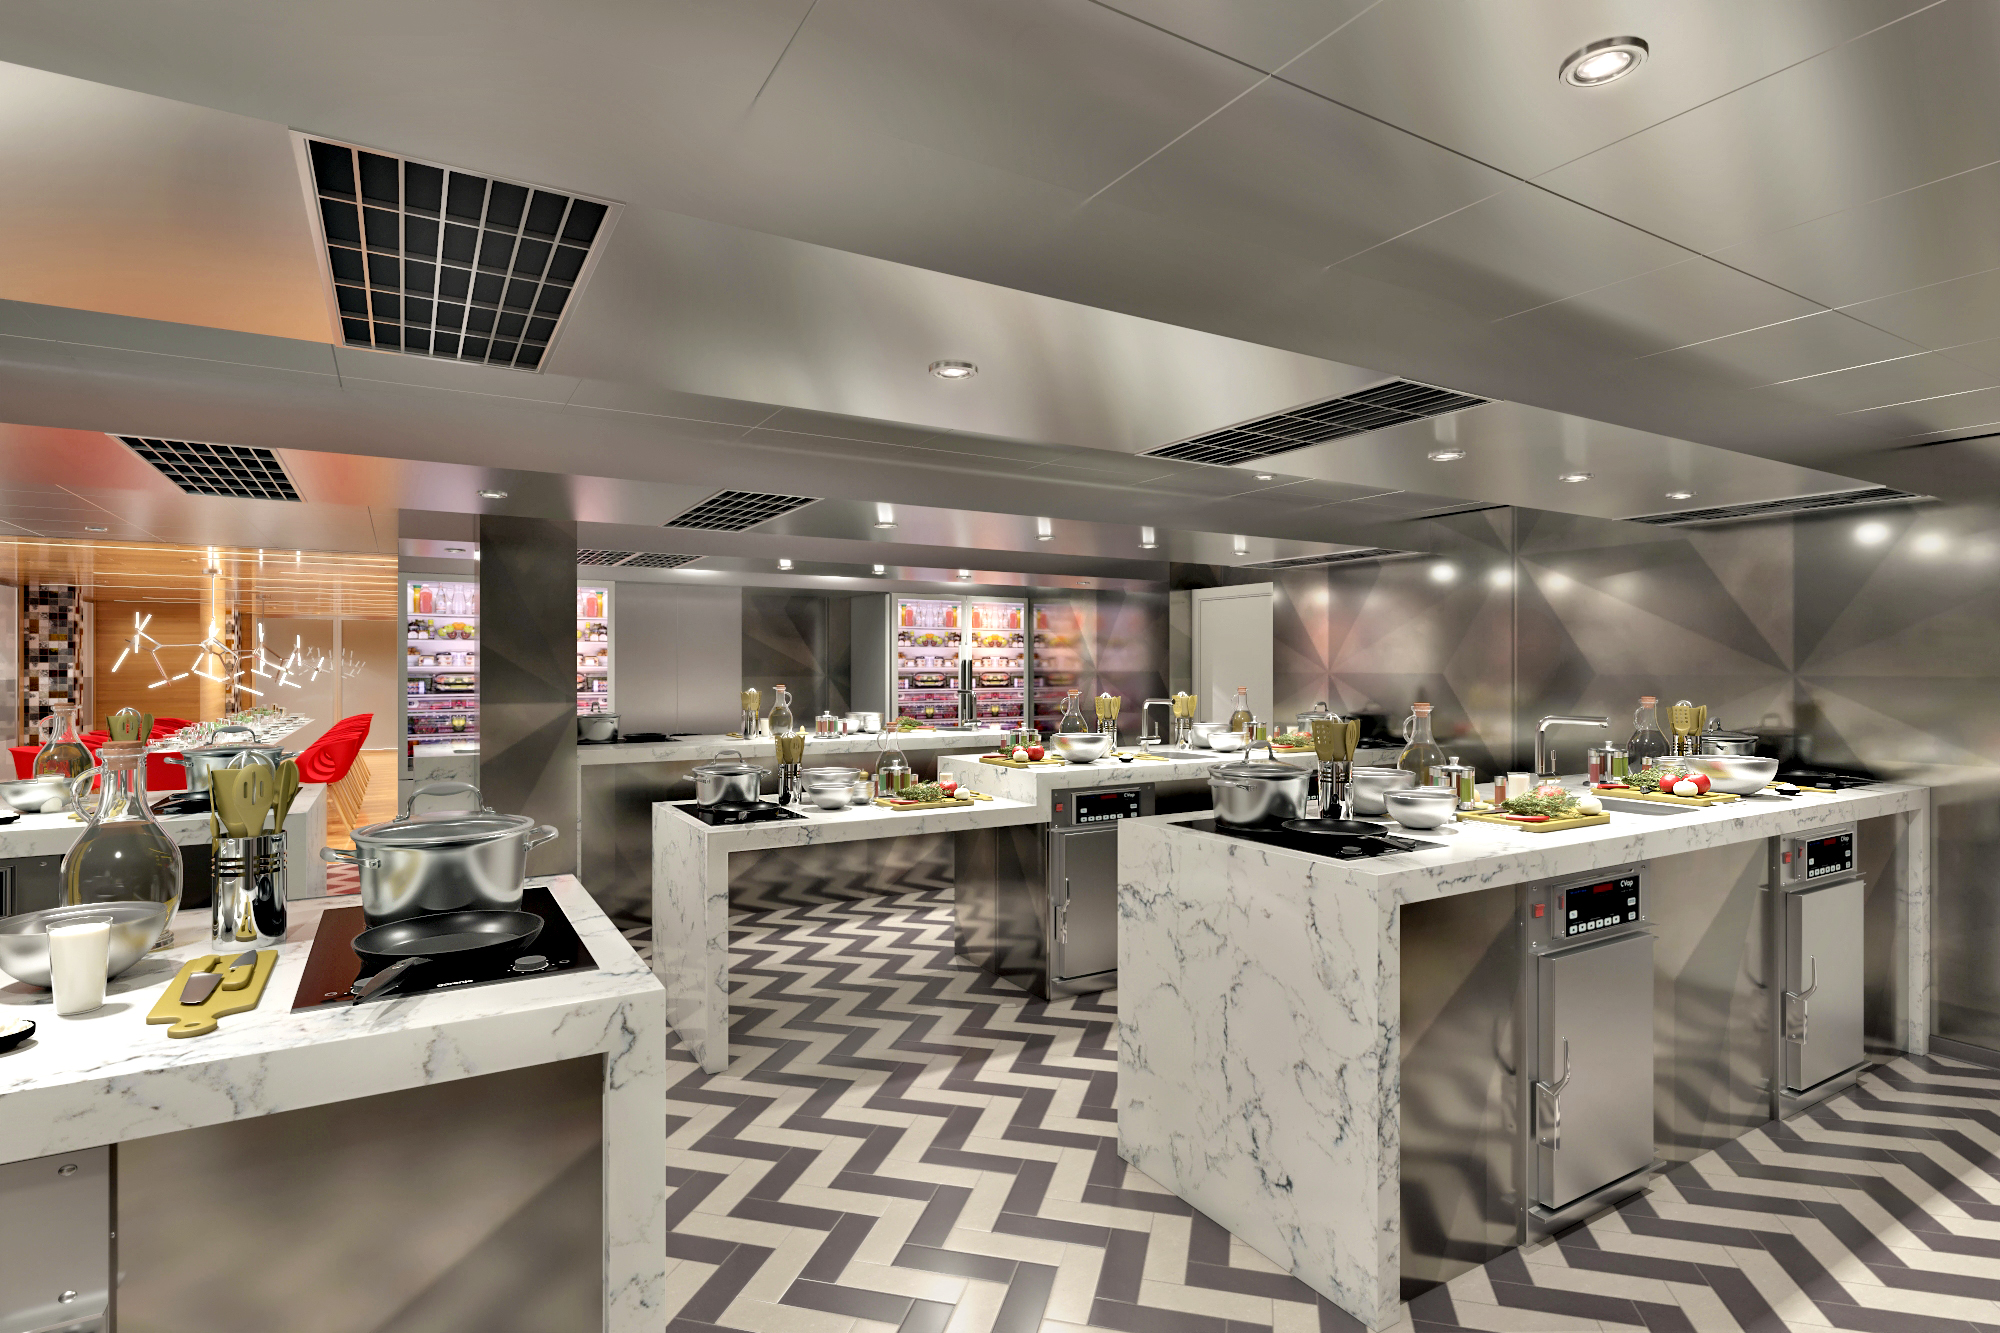 It's Time to Have Some 'Fun with Cooking'! First-in-Fleet Culinary Studio, 'Carnival Kitchen,' to Debut on Carnival Panorama